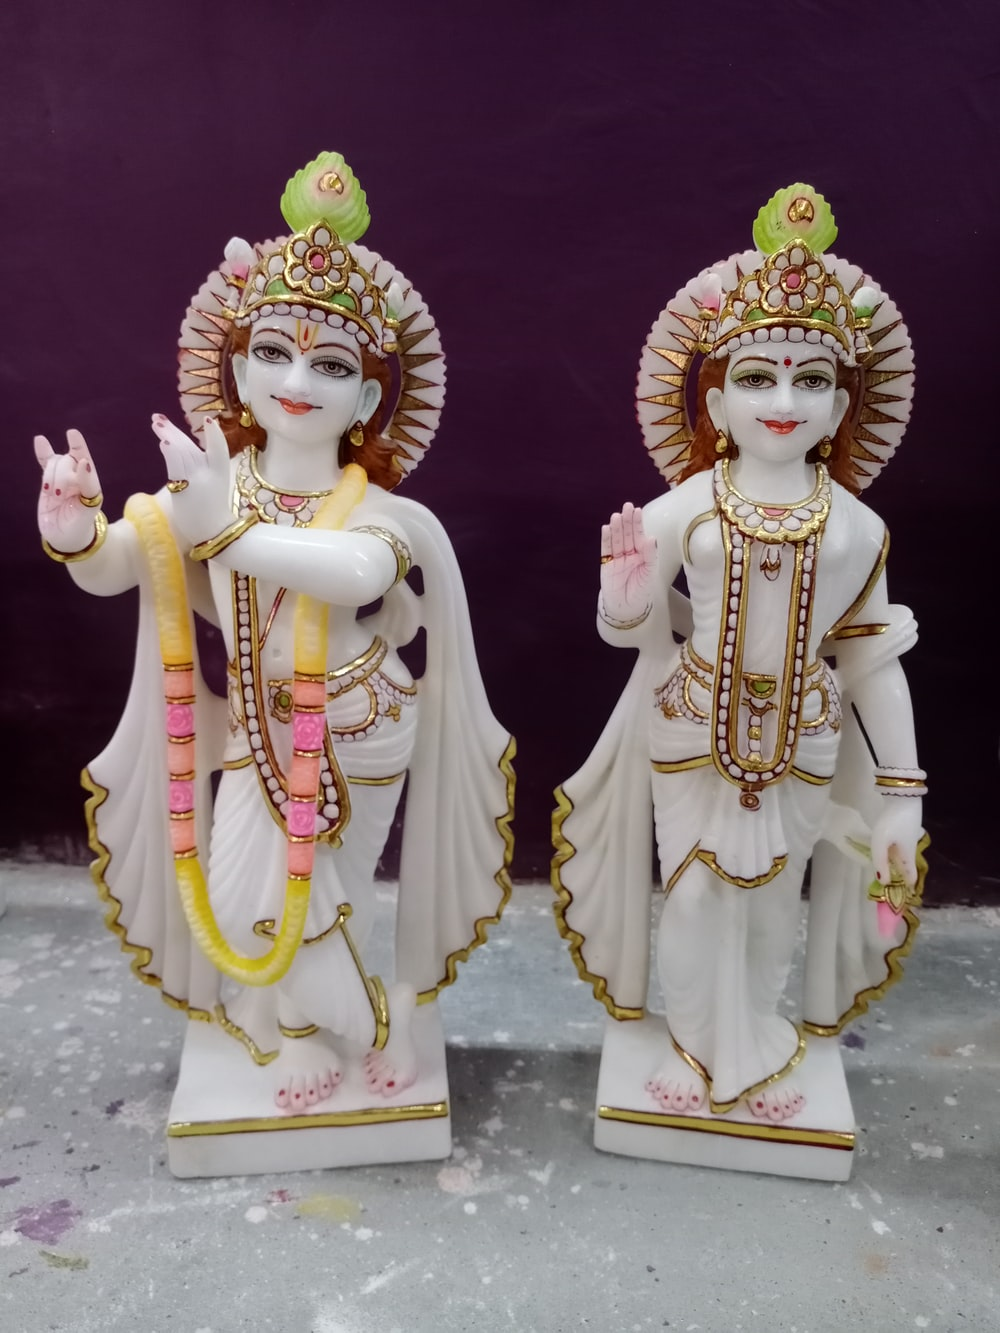 750 Radha And Krishna Pictures Download Free Images On Unsplash